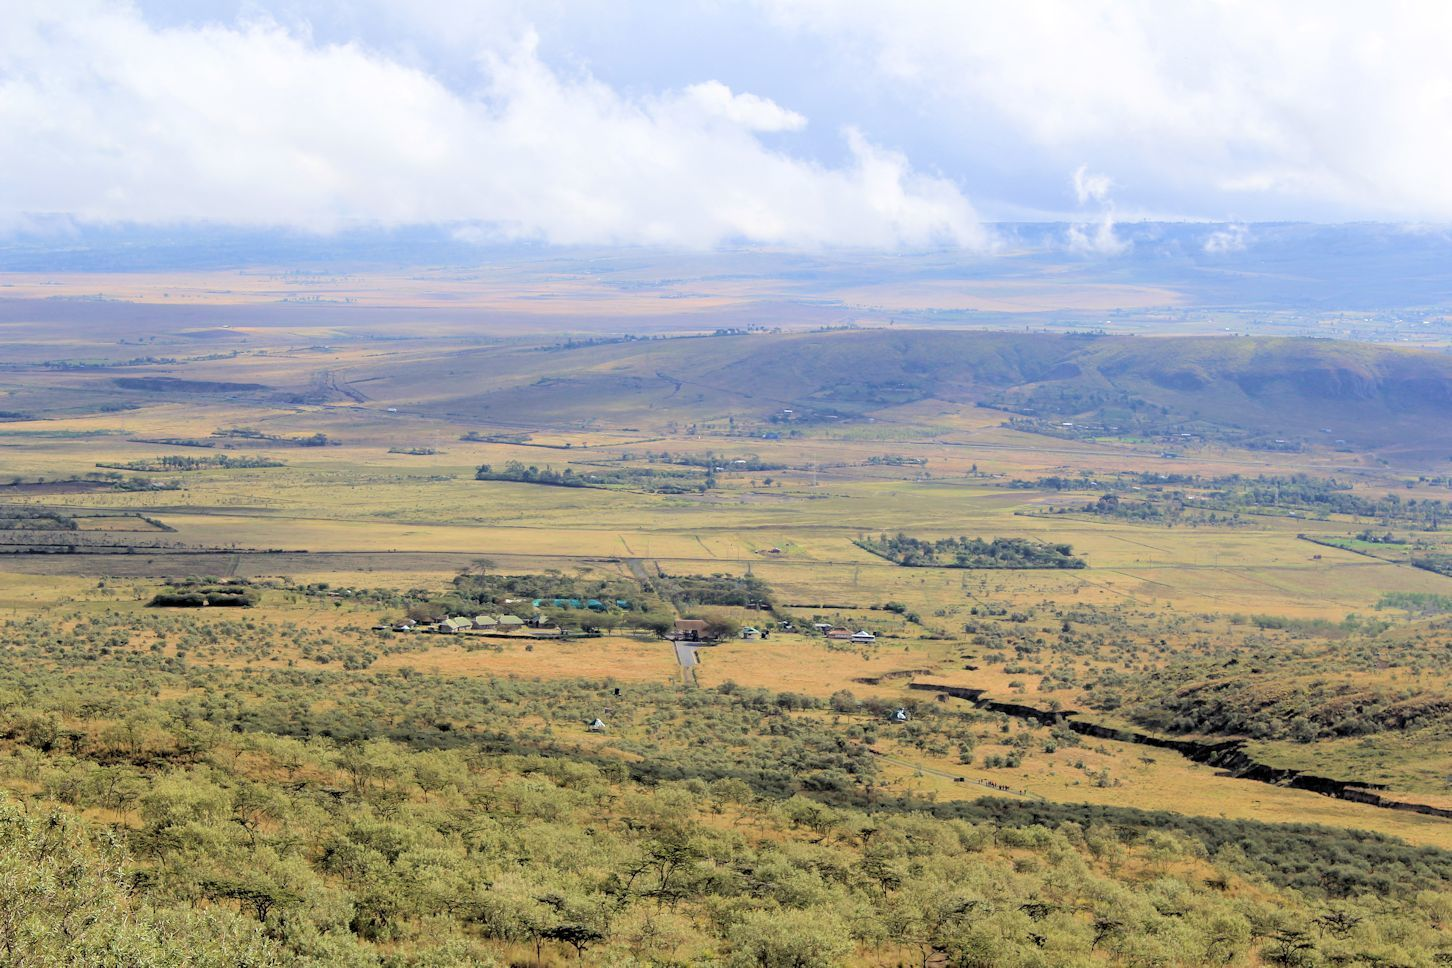 Mt. Longonot National Park